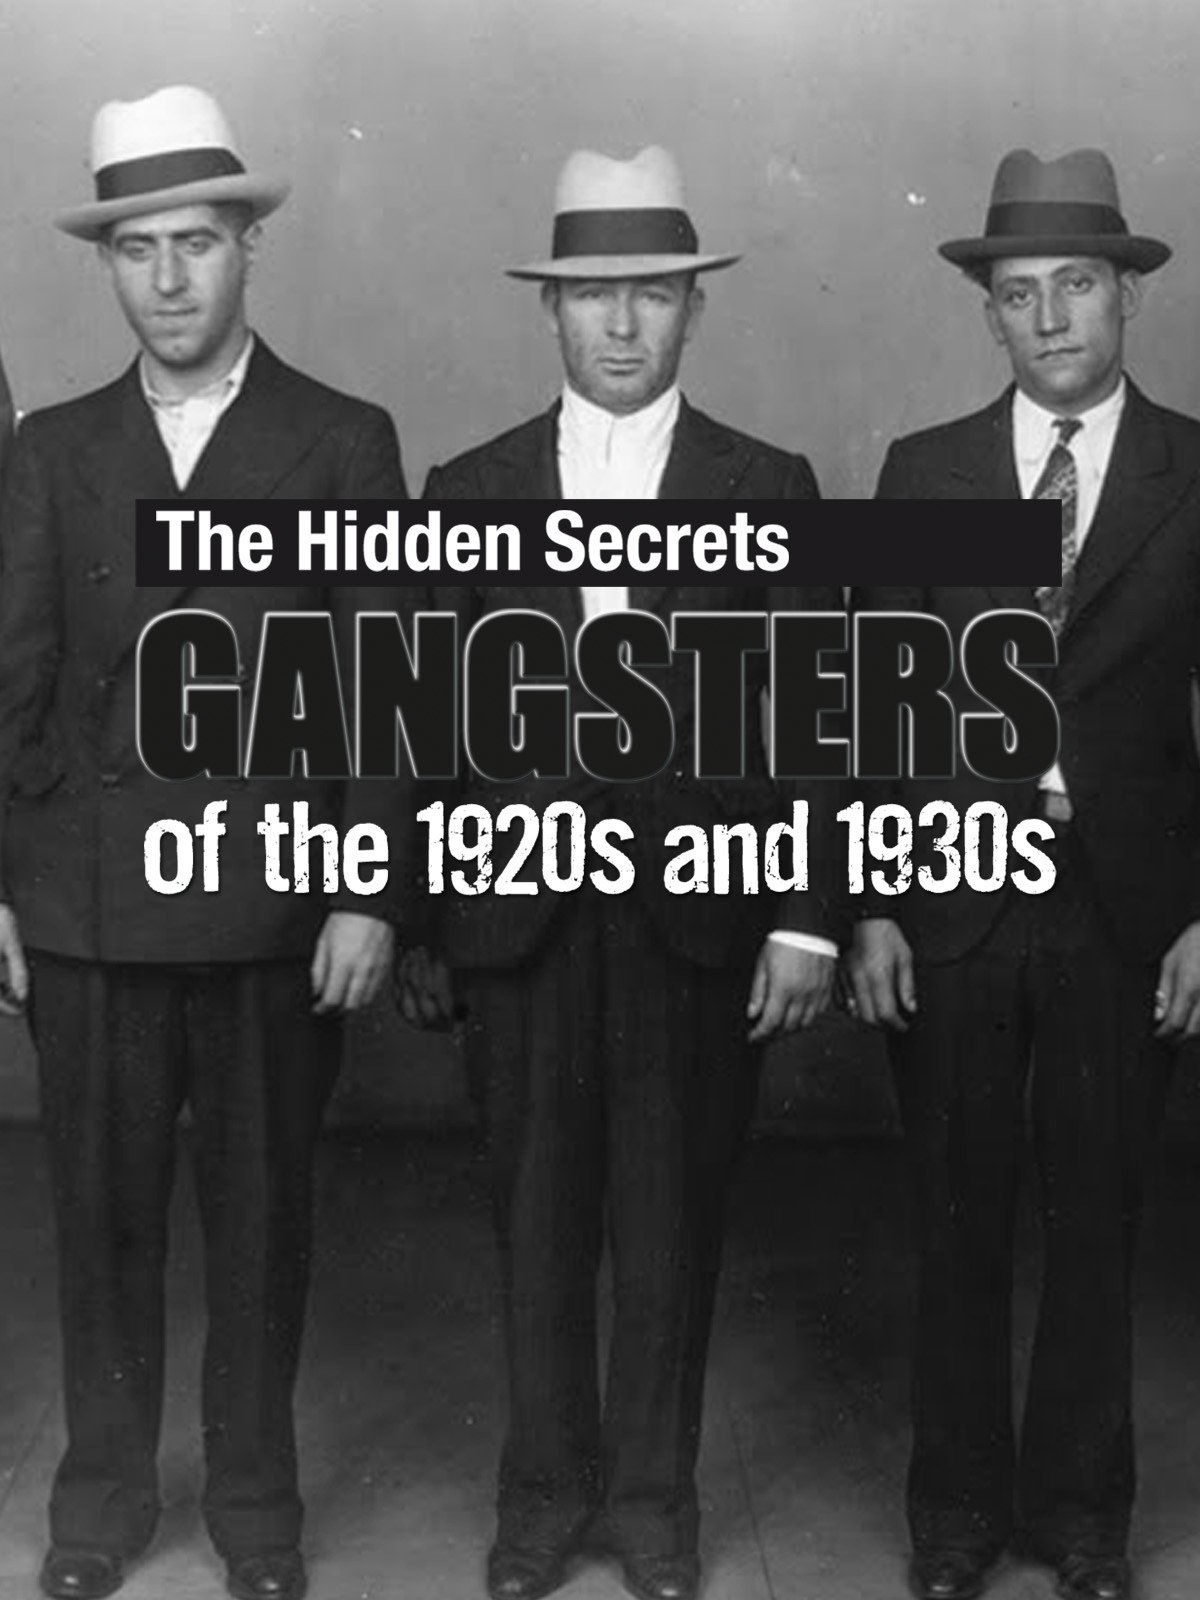 The Hidden Secrets: Gangsters of the 1920s and 1930s on Amazon Prime Video UK